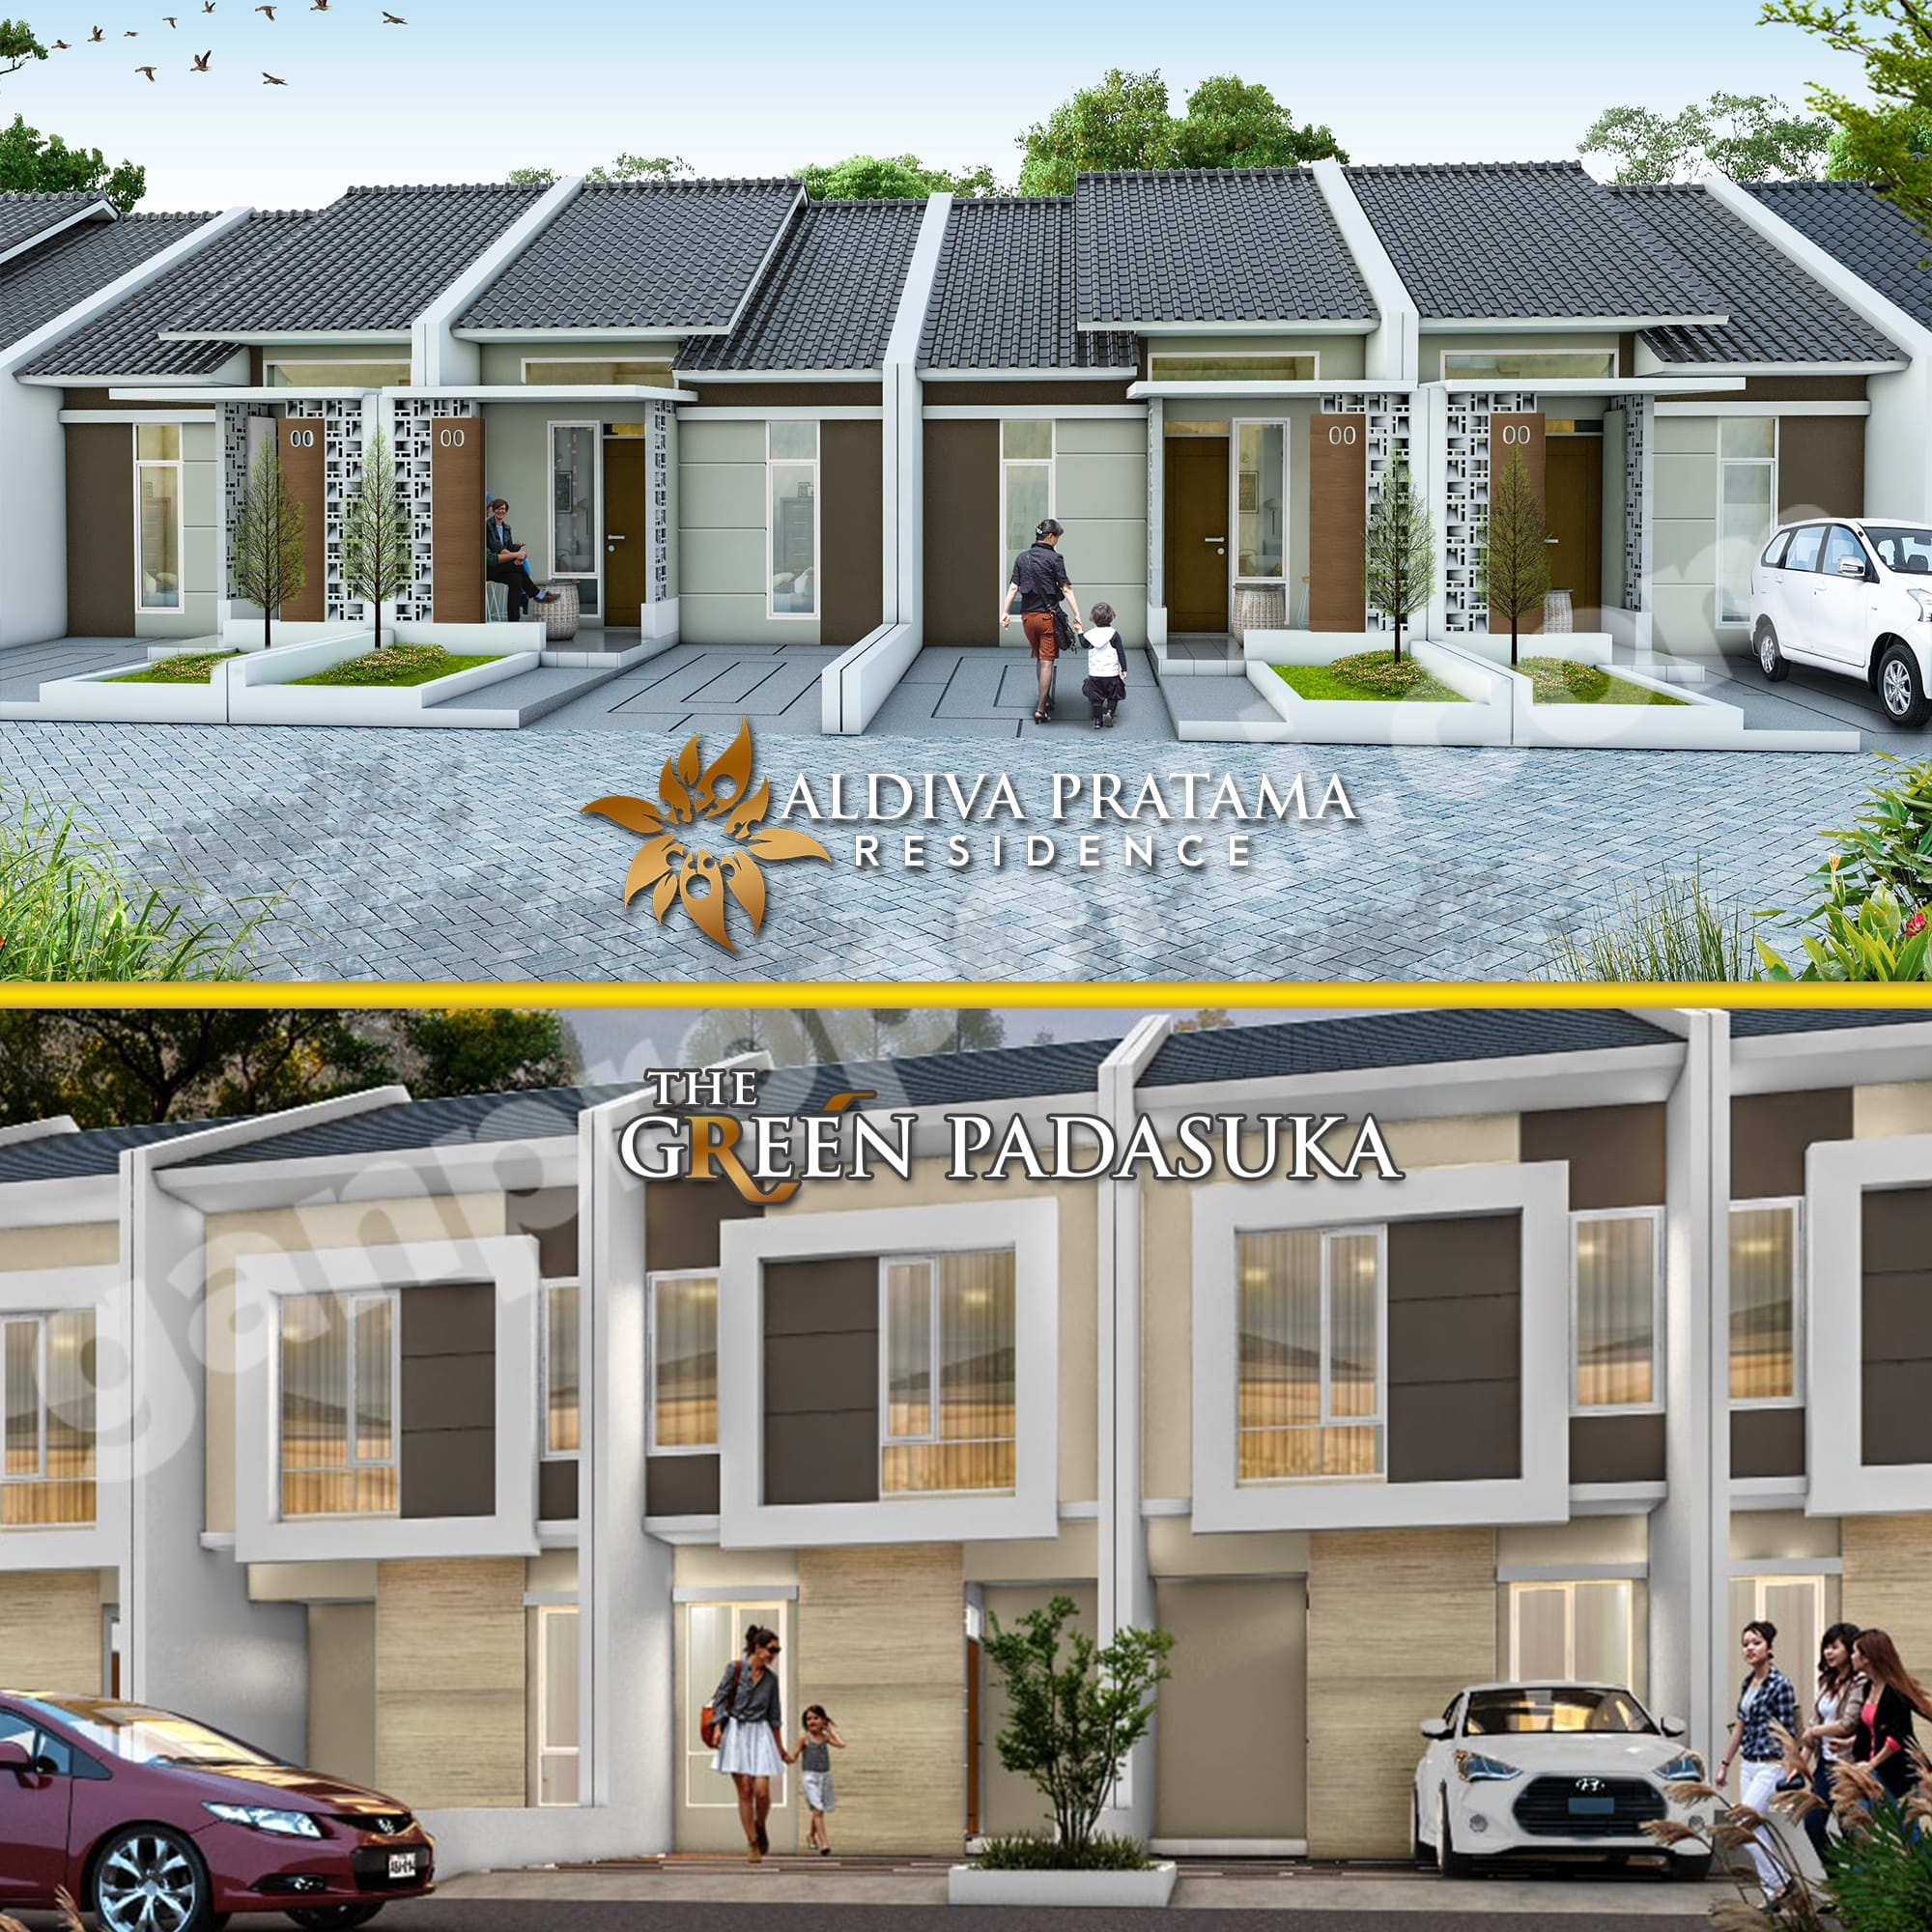 New Project Aldiva Pratama Residence & The Green Padasuka